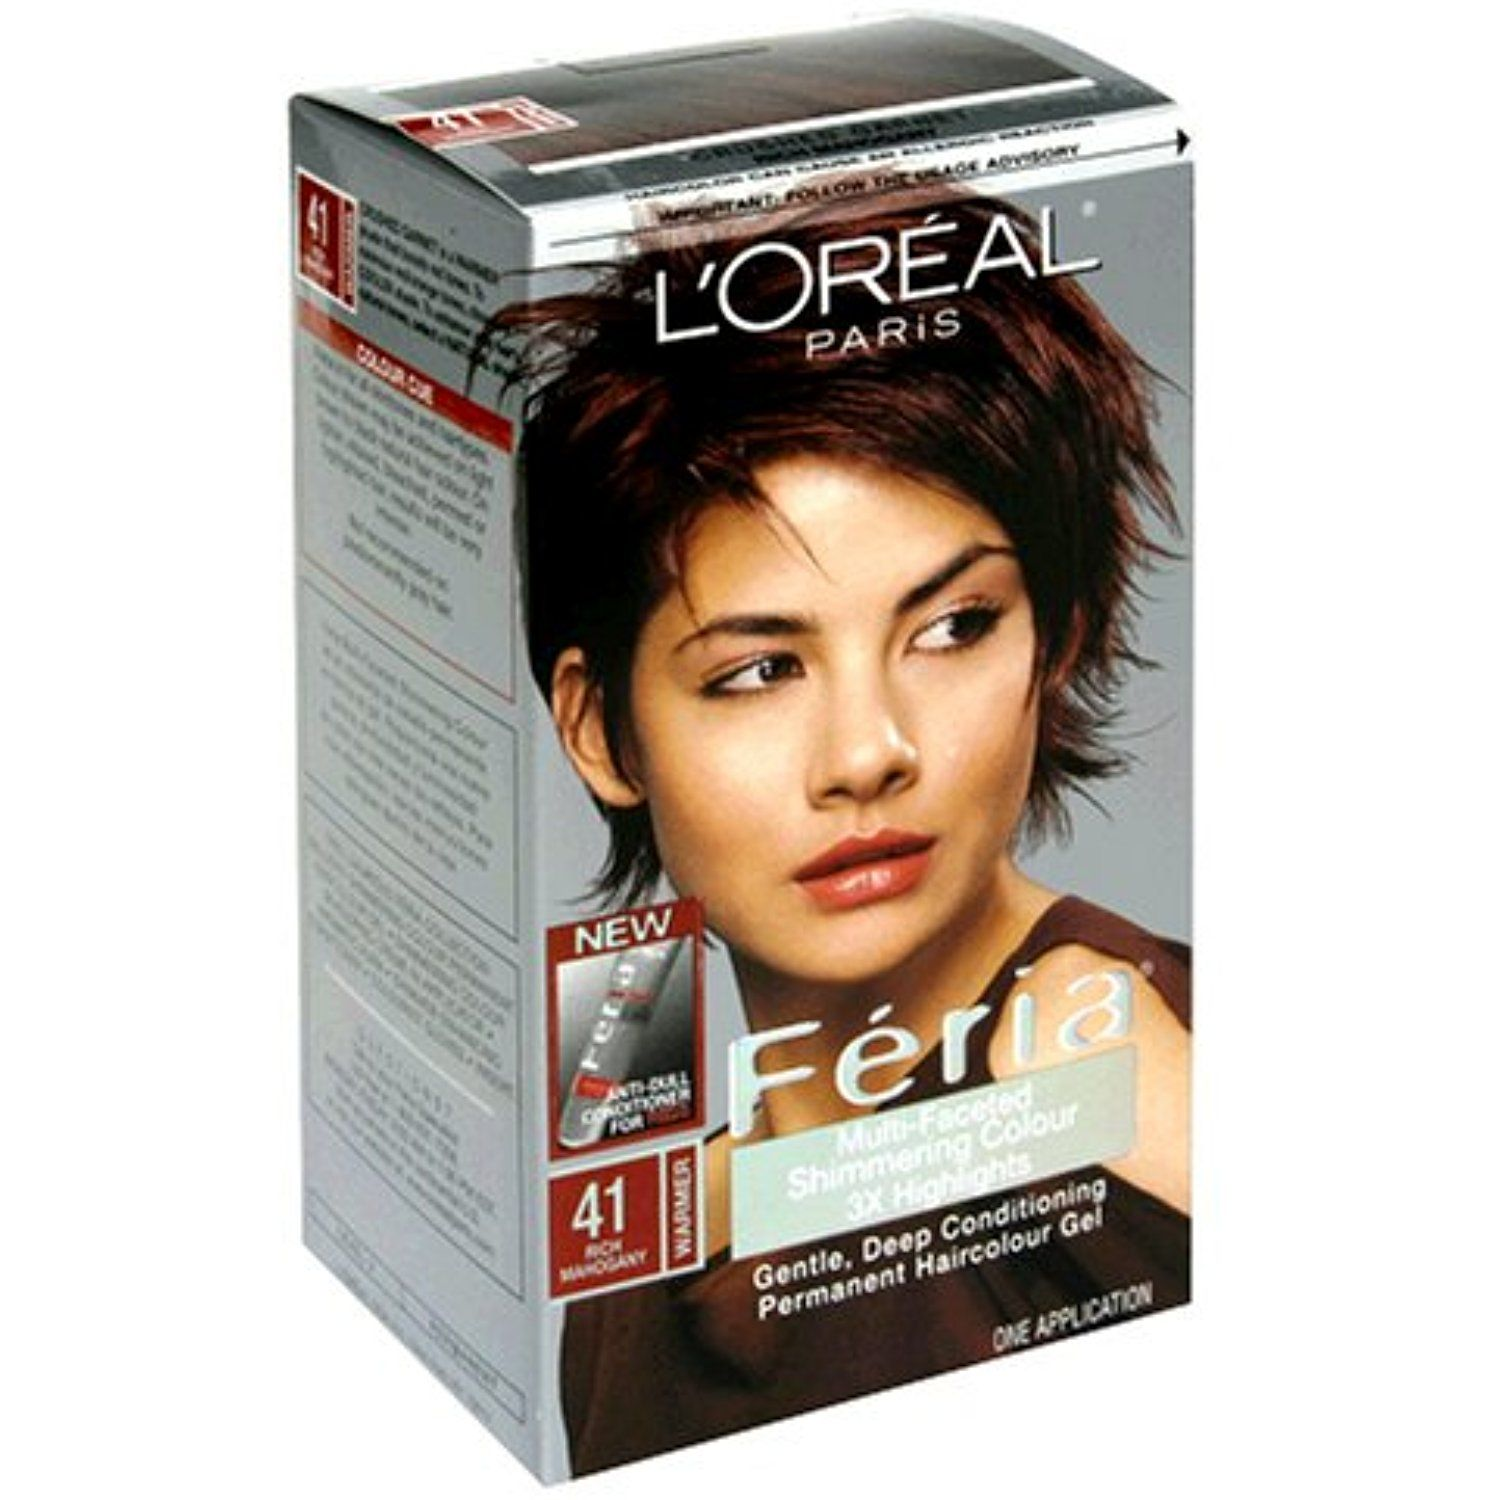 Loreal Feria Multi Faceted Shimmering Colour Level 3 Permanent